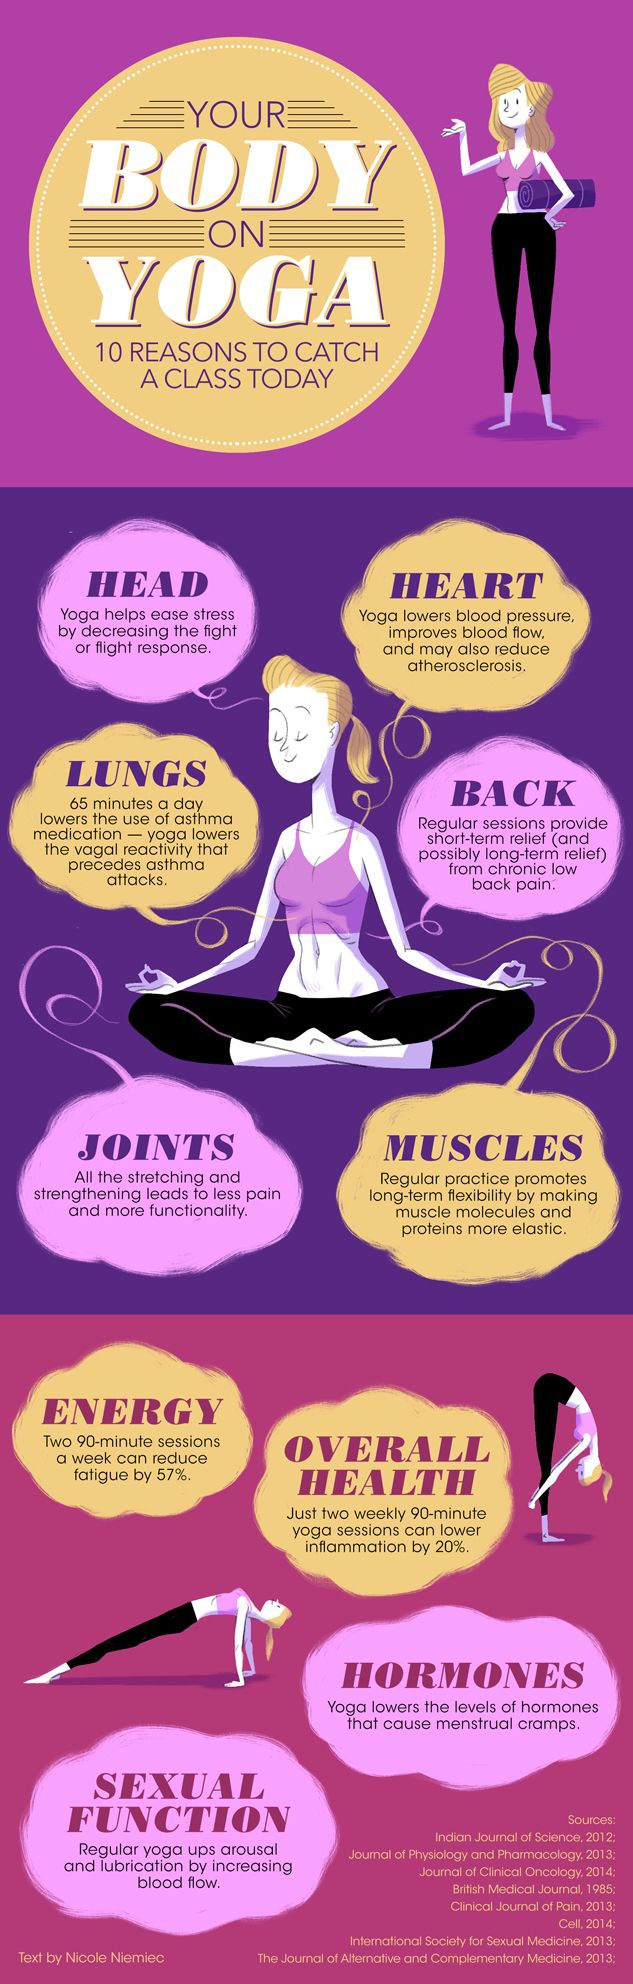 See It: Your Body On Yoga